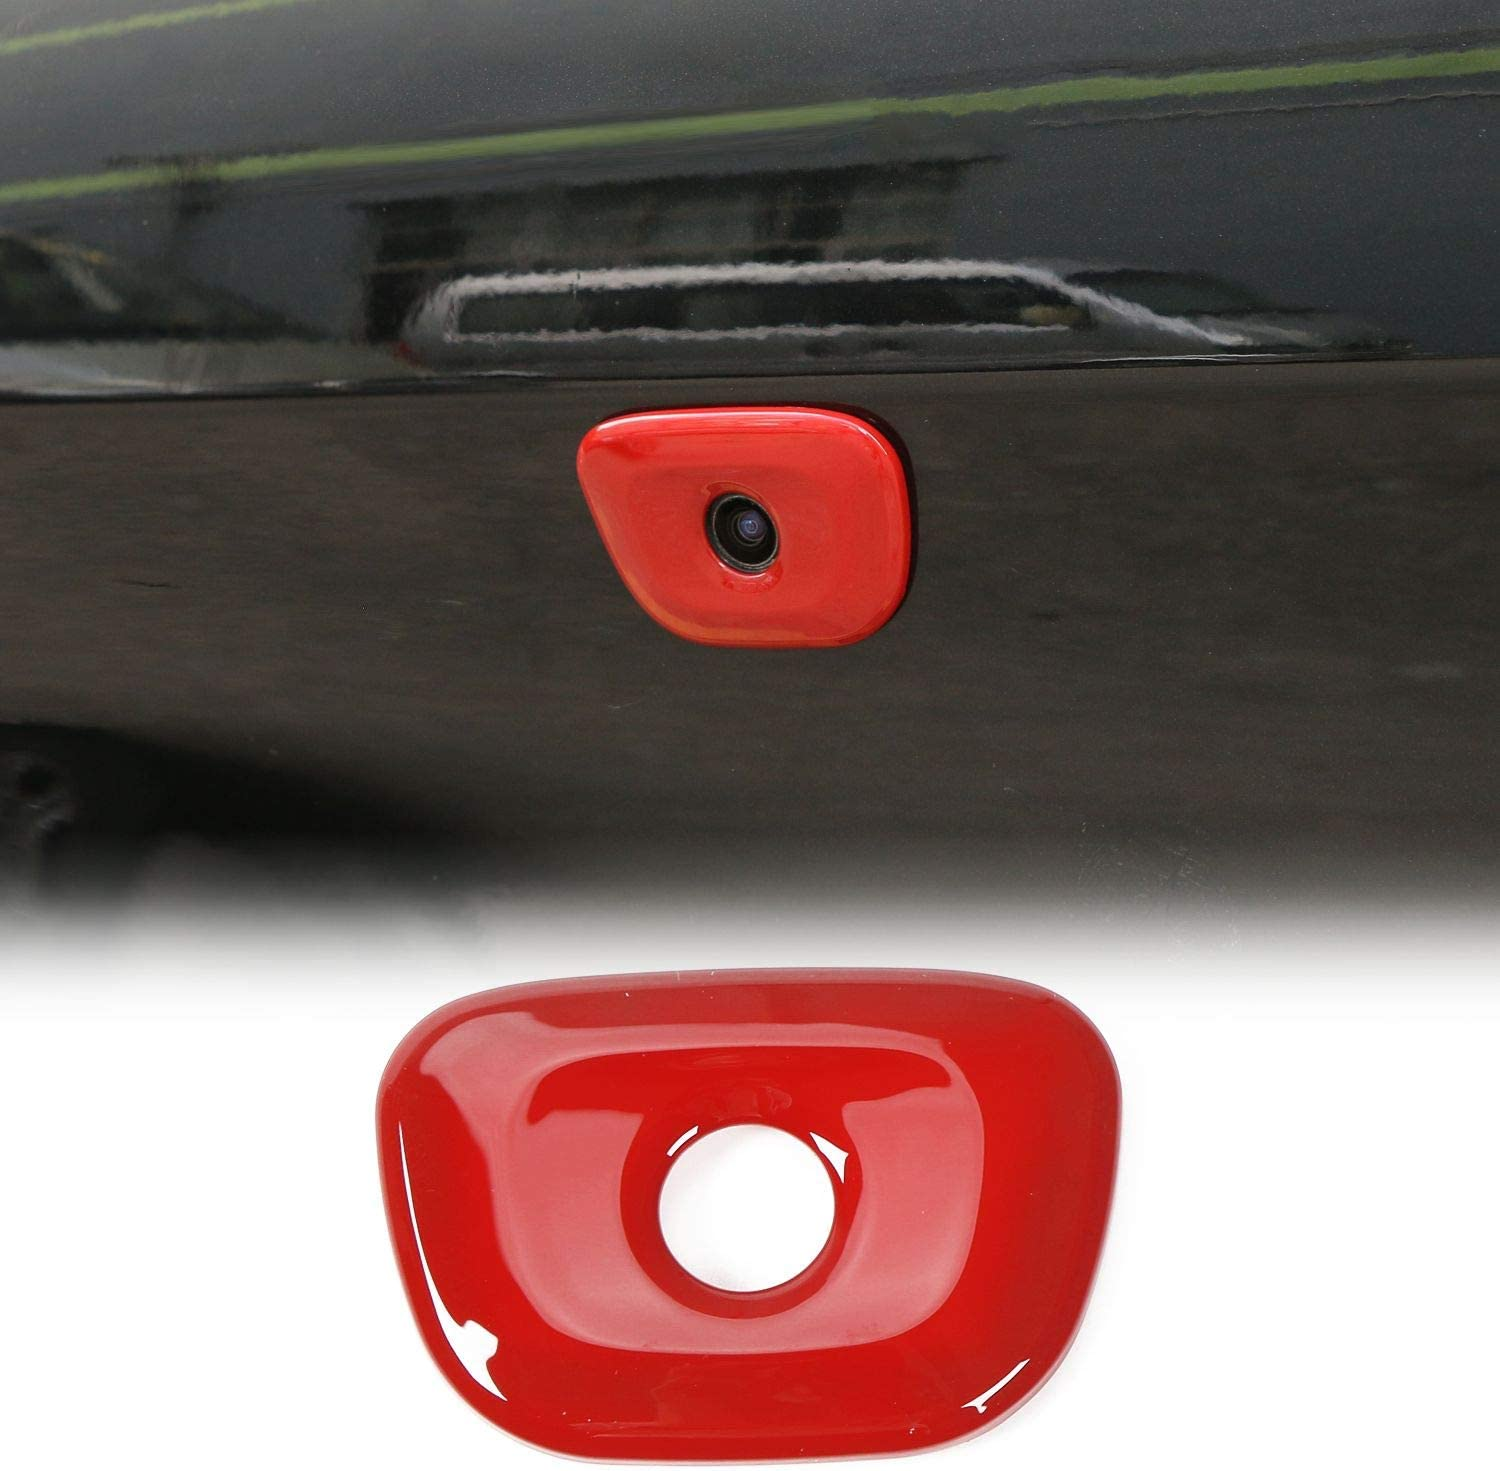 JeCar for Dodge Charger Rear View Camera Reverse Backup Camera Trim Cover Sticker Decals Challenger Accessories for Dodge Charger 2015-2019